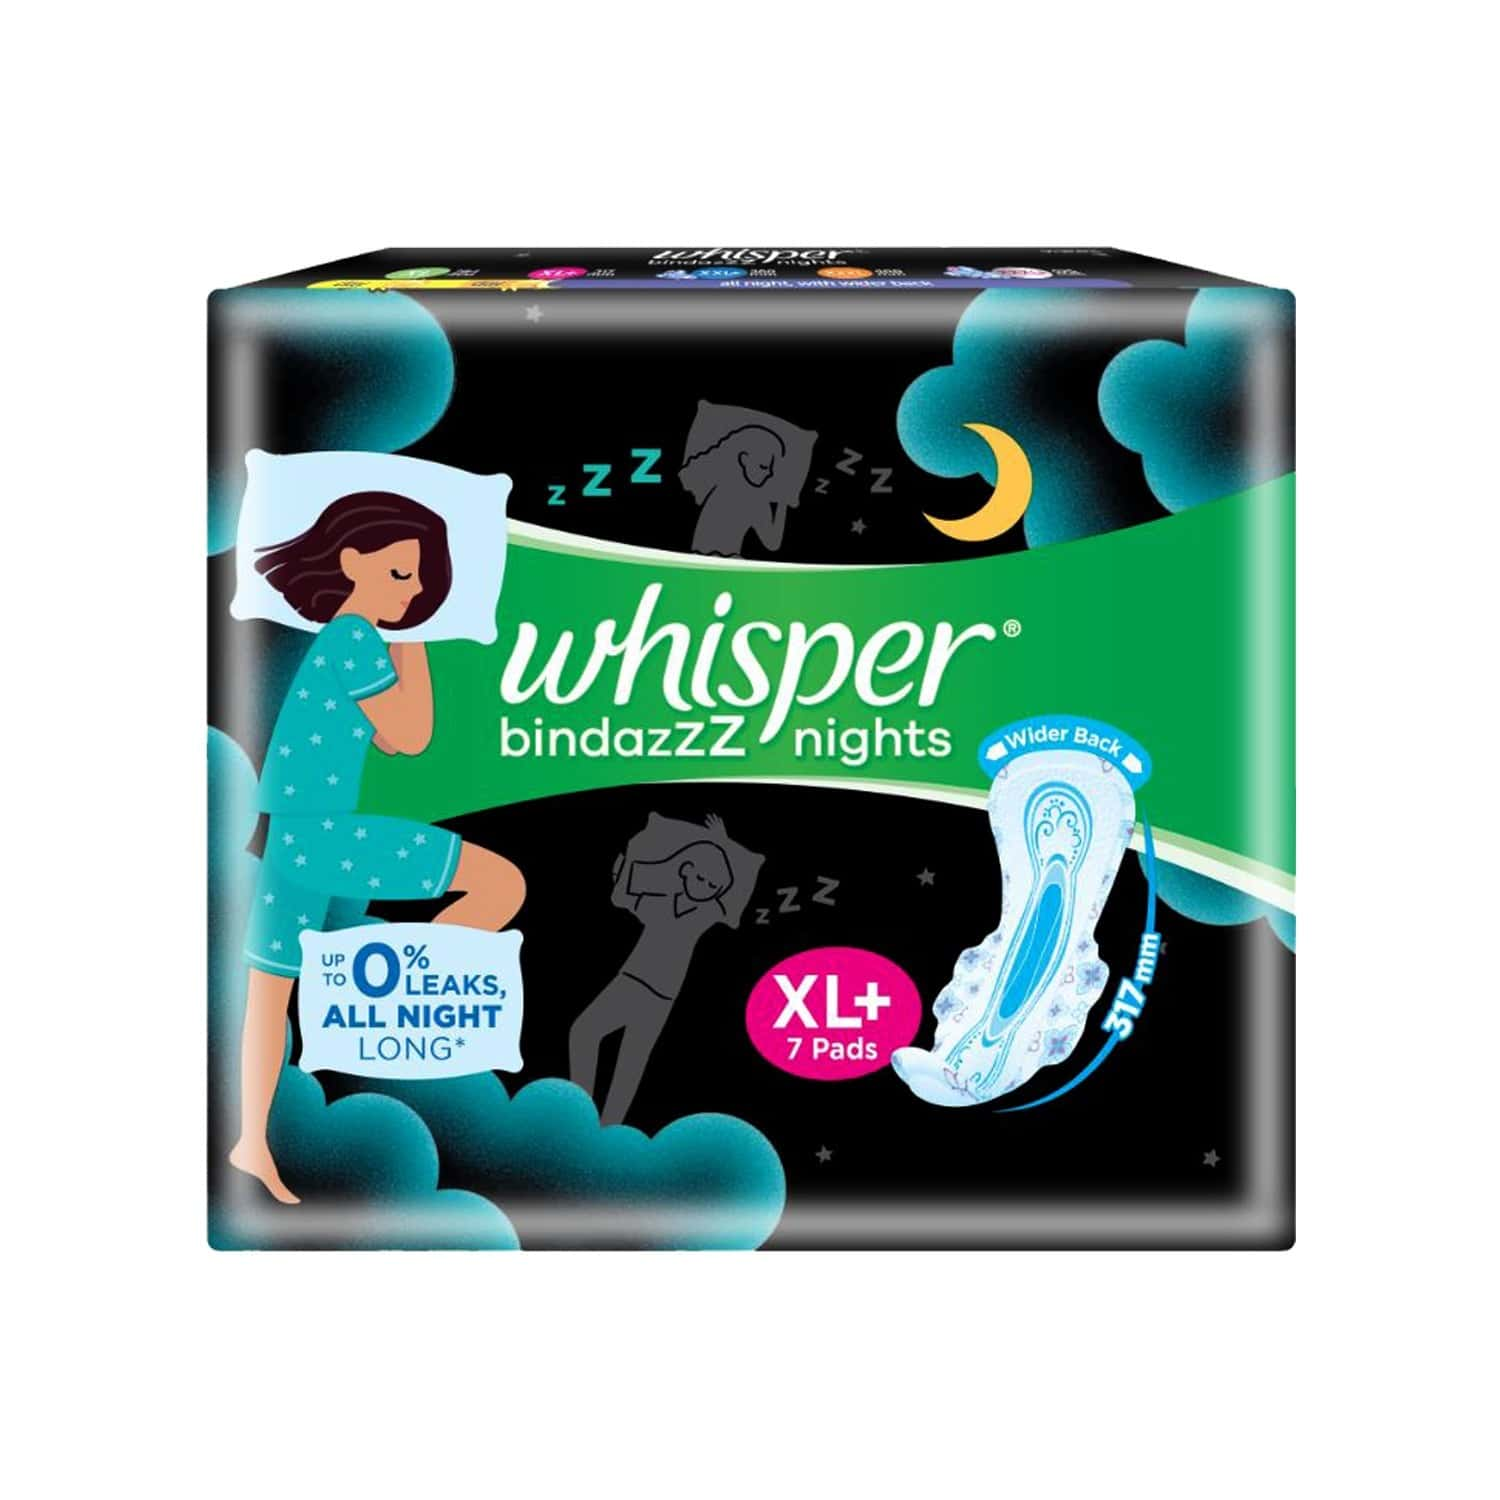 Whisper Bindazzz Nights Xl Plus - 7 Pads